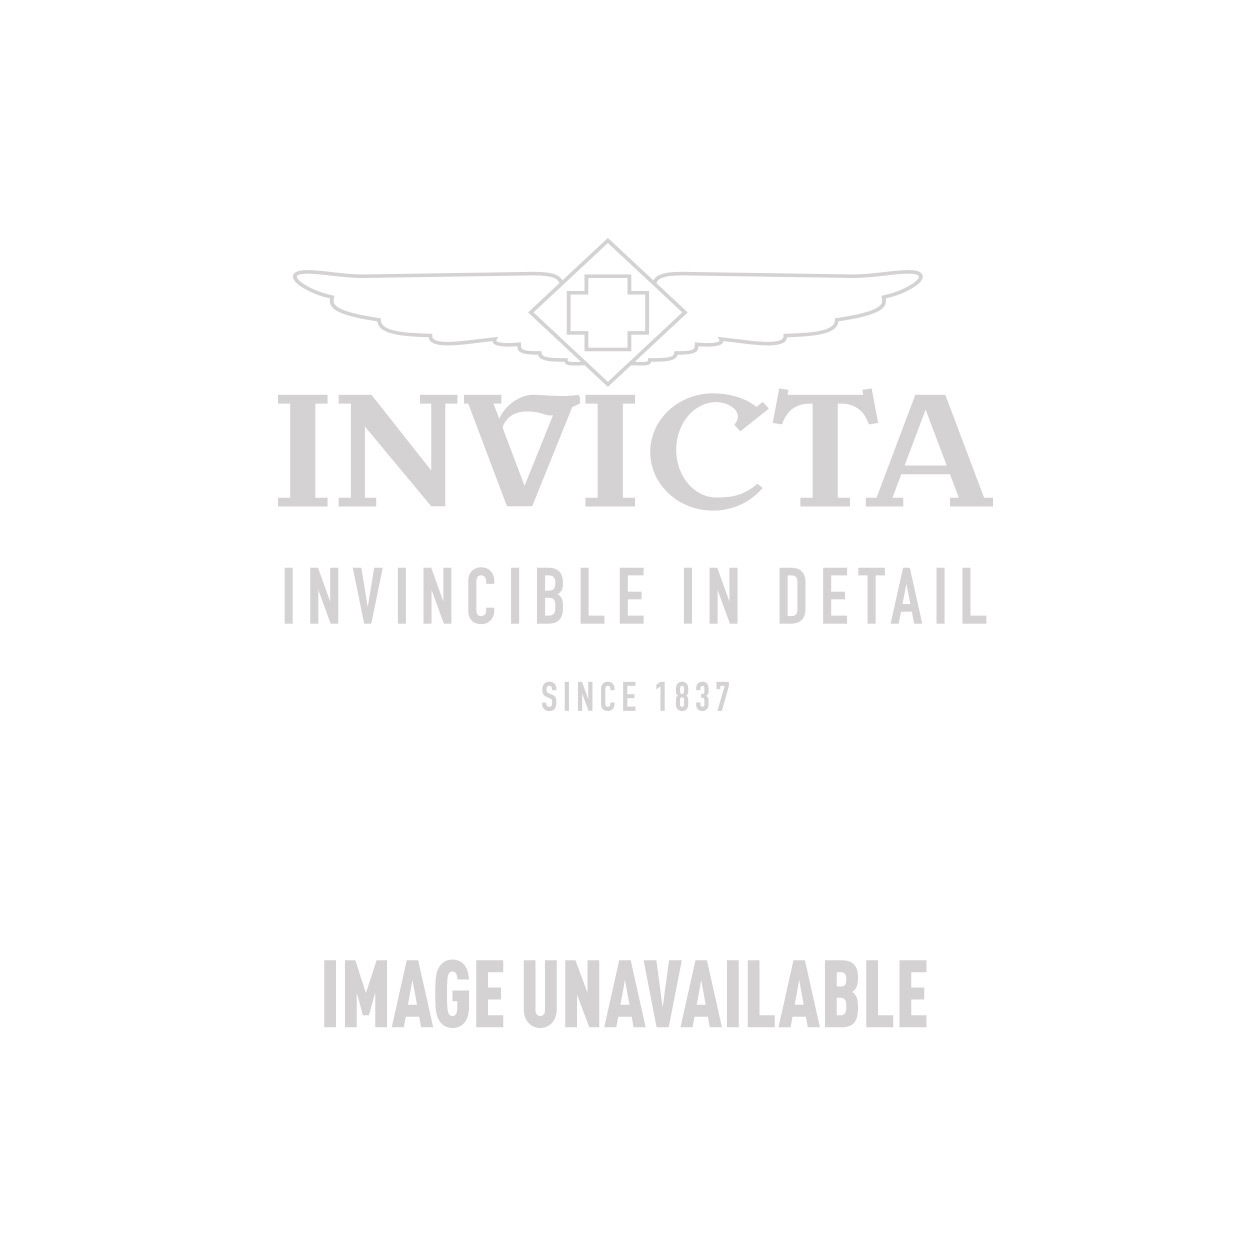 Invicta Specialty Swiss Movement Quartz Watch - Stainless Steel case with Blue tone Leather band - Model 10687